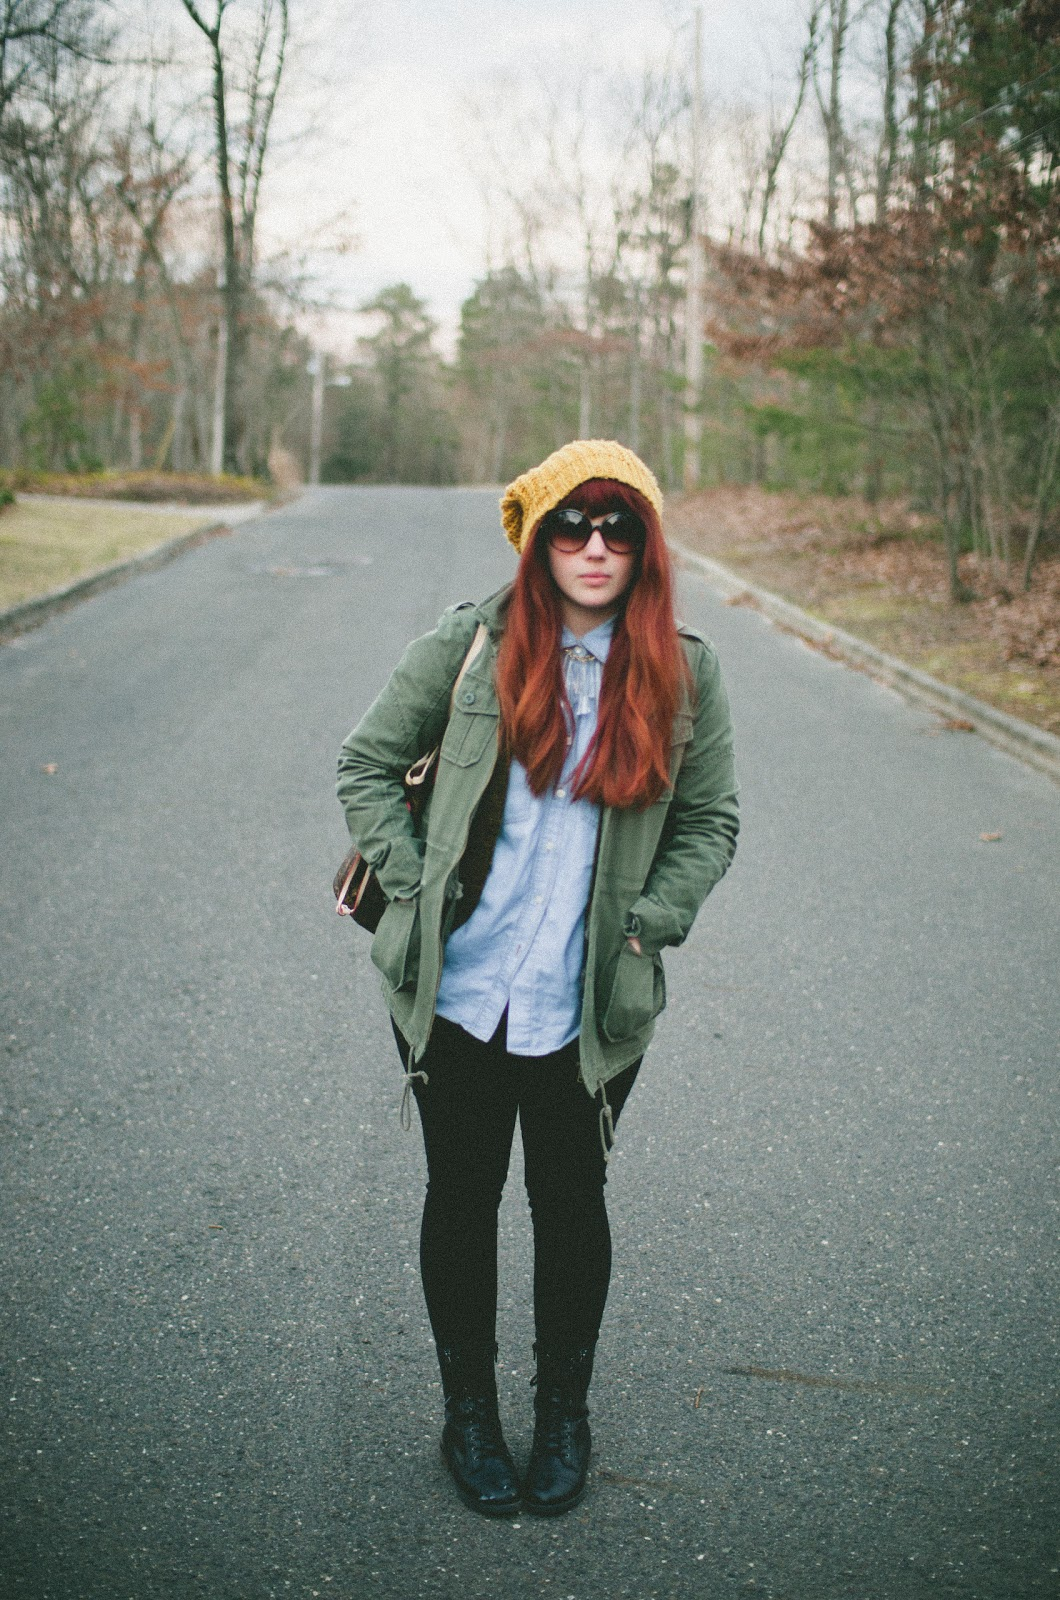 redhead, hip, trendy, tumblr, combat boots, army green jacket, round sunglasses, bangs